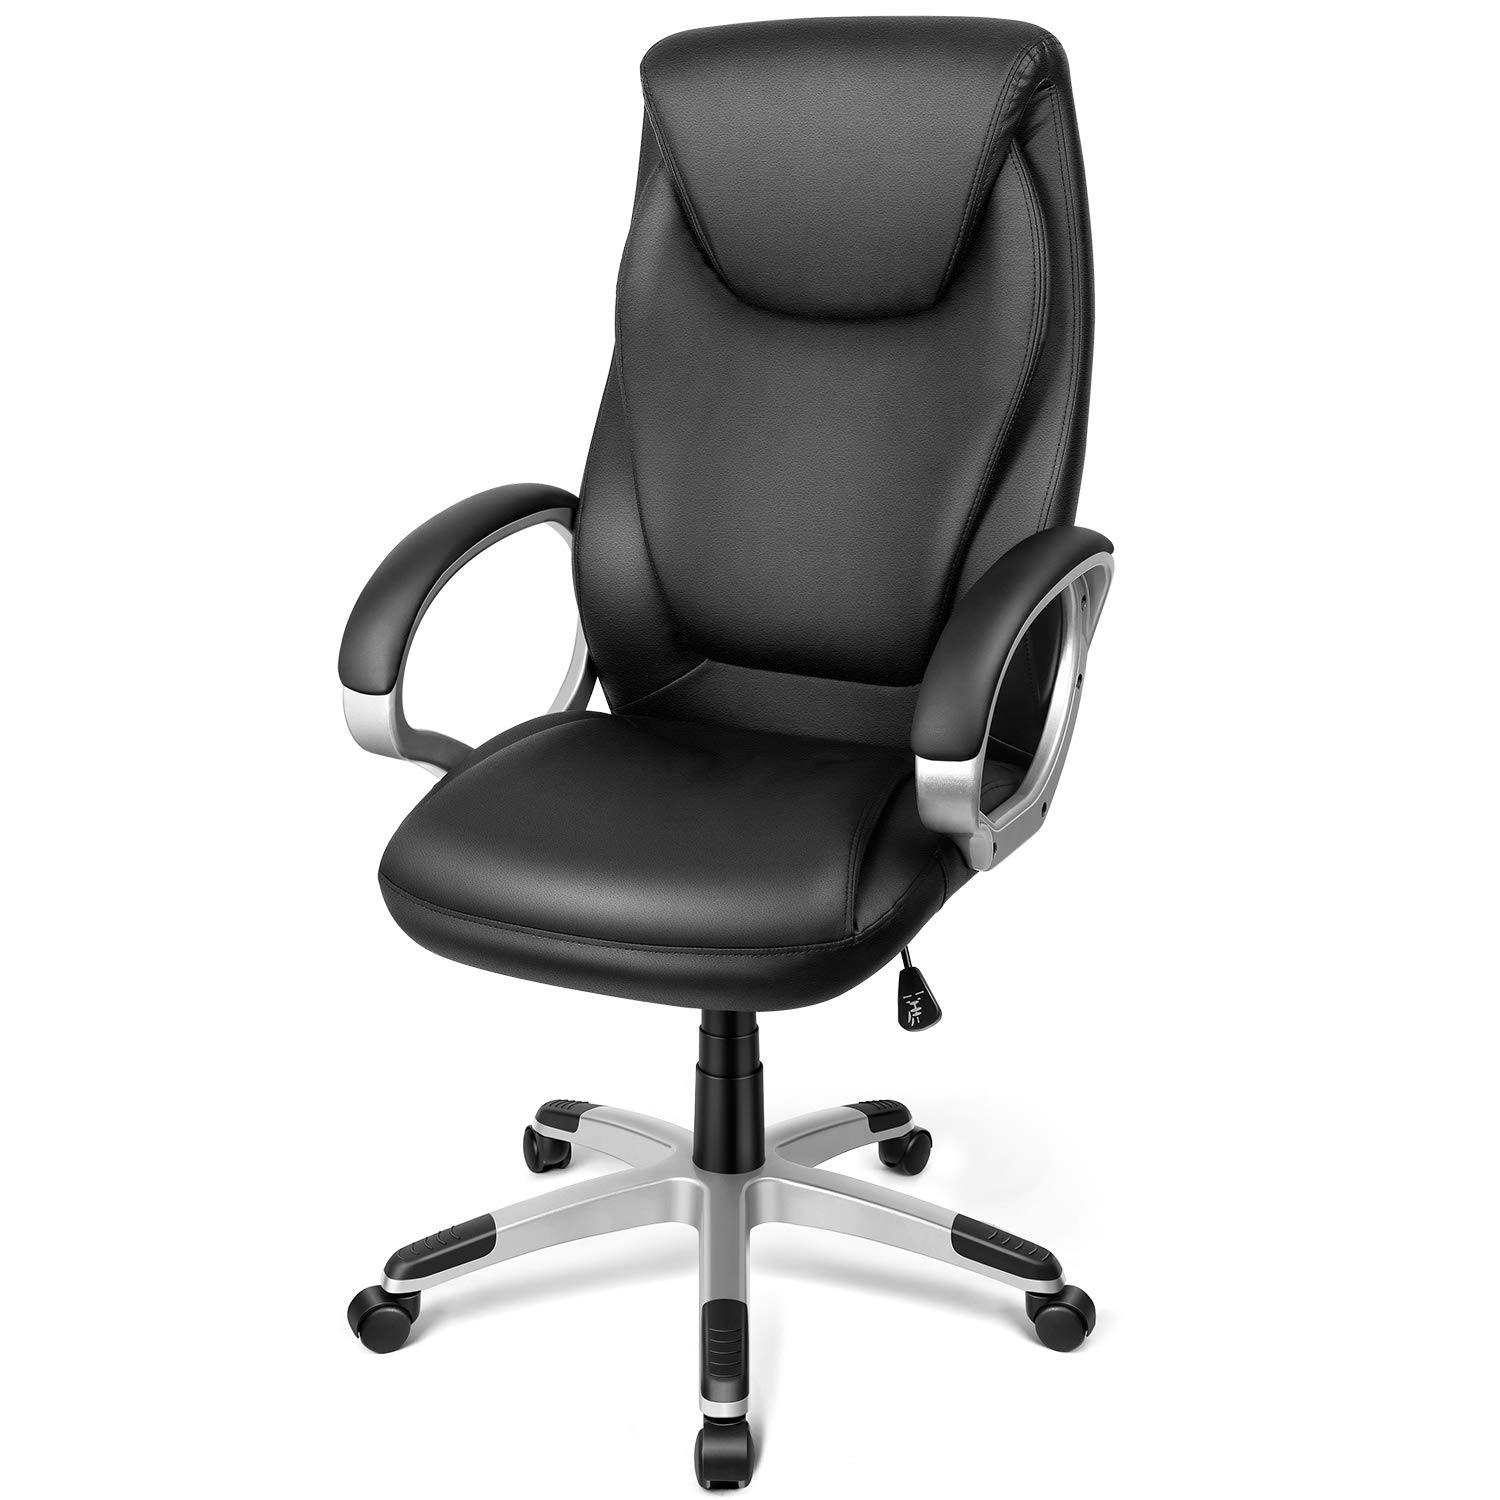 Office Chair Desk - TUSY Ergonomic Swivel Executive Adjustable Gaming Chair, High Back Task Computer Stool with Arm, Leather Racing Chair by TUSY